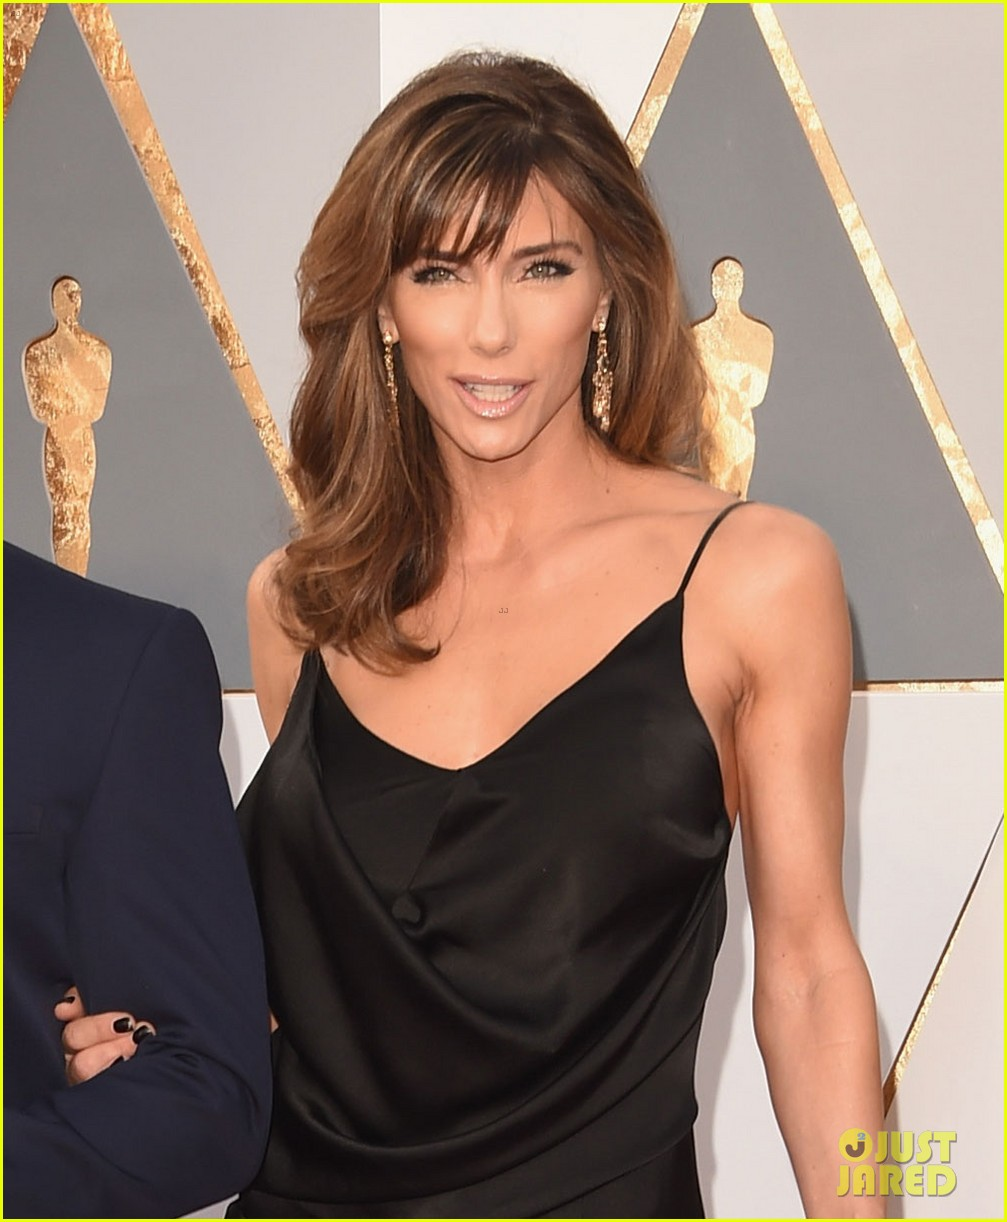 Sylvester Stallone & Wife Jennifer Flavin Attend Oscars 2016!: Photo 3592062 | 2016 Oscars ...